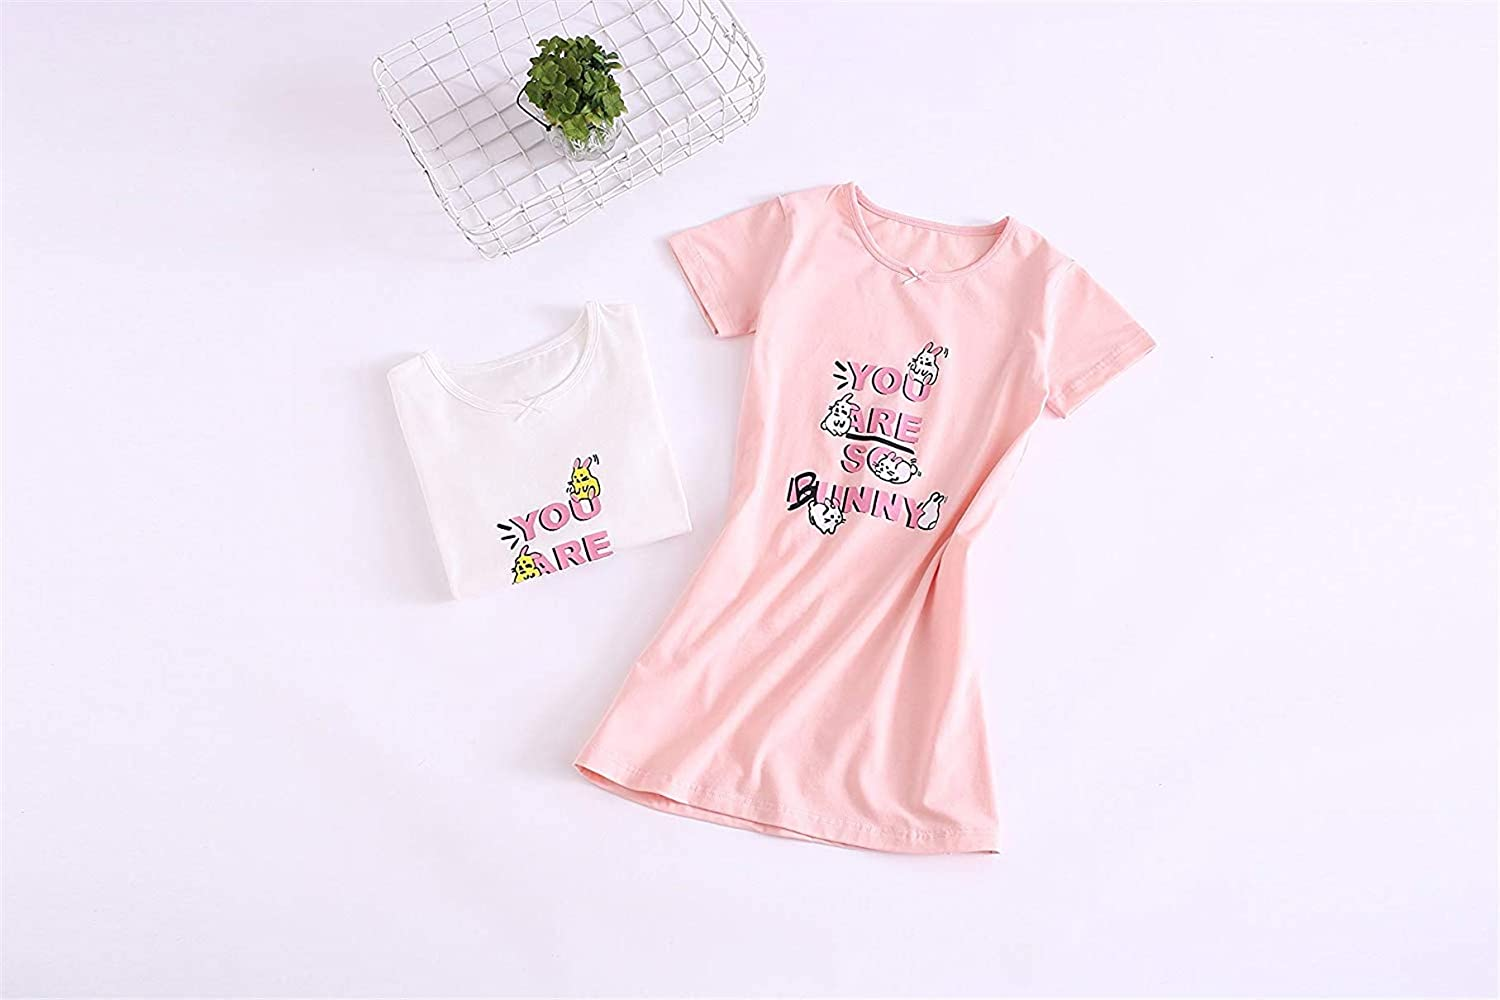 Nest Home Girls Bunny Unicorn Nighties Cotton Sleepwear Short Sleeve Sleep Shirt for 3-12 Years